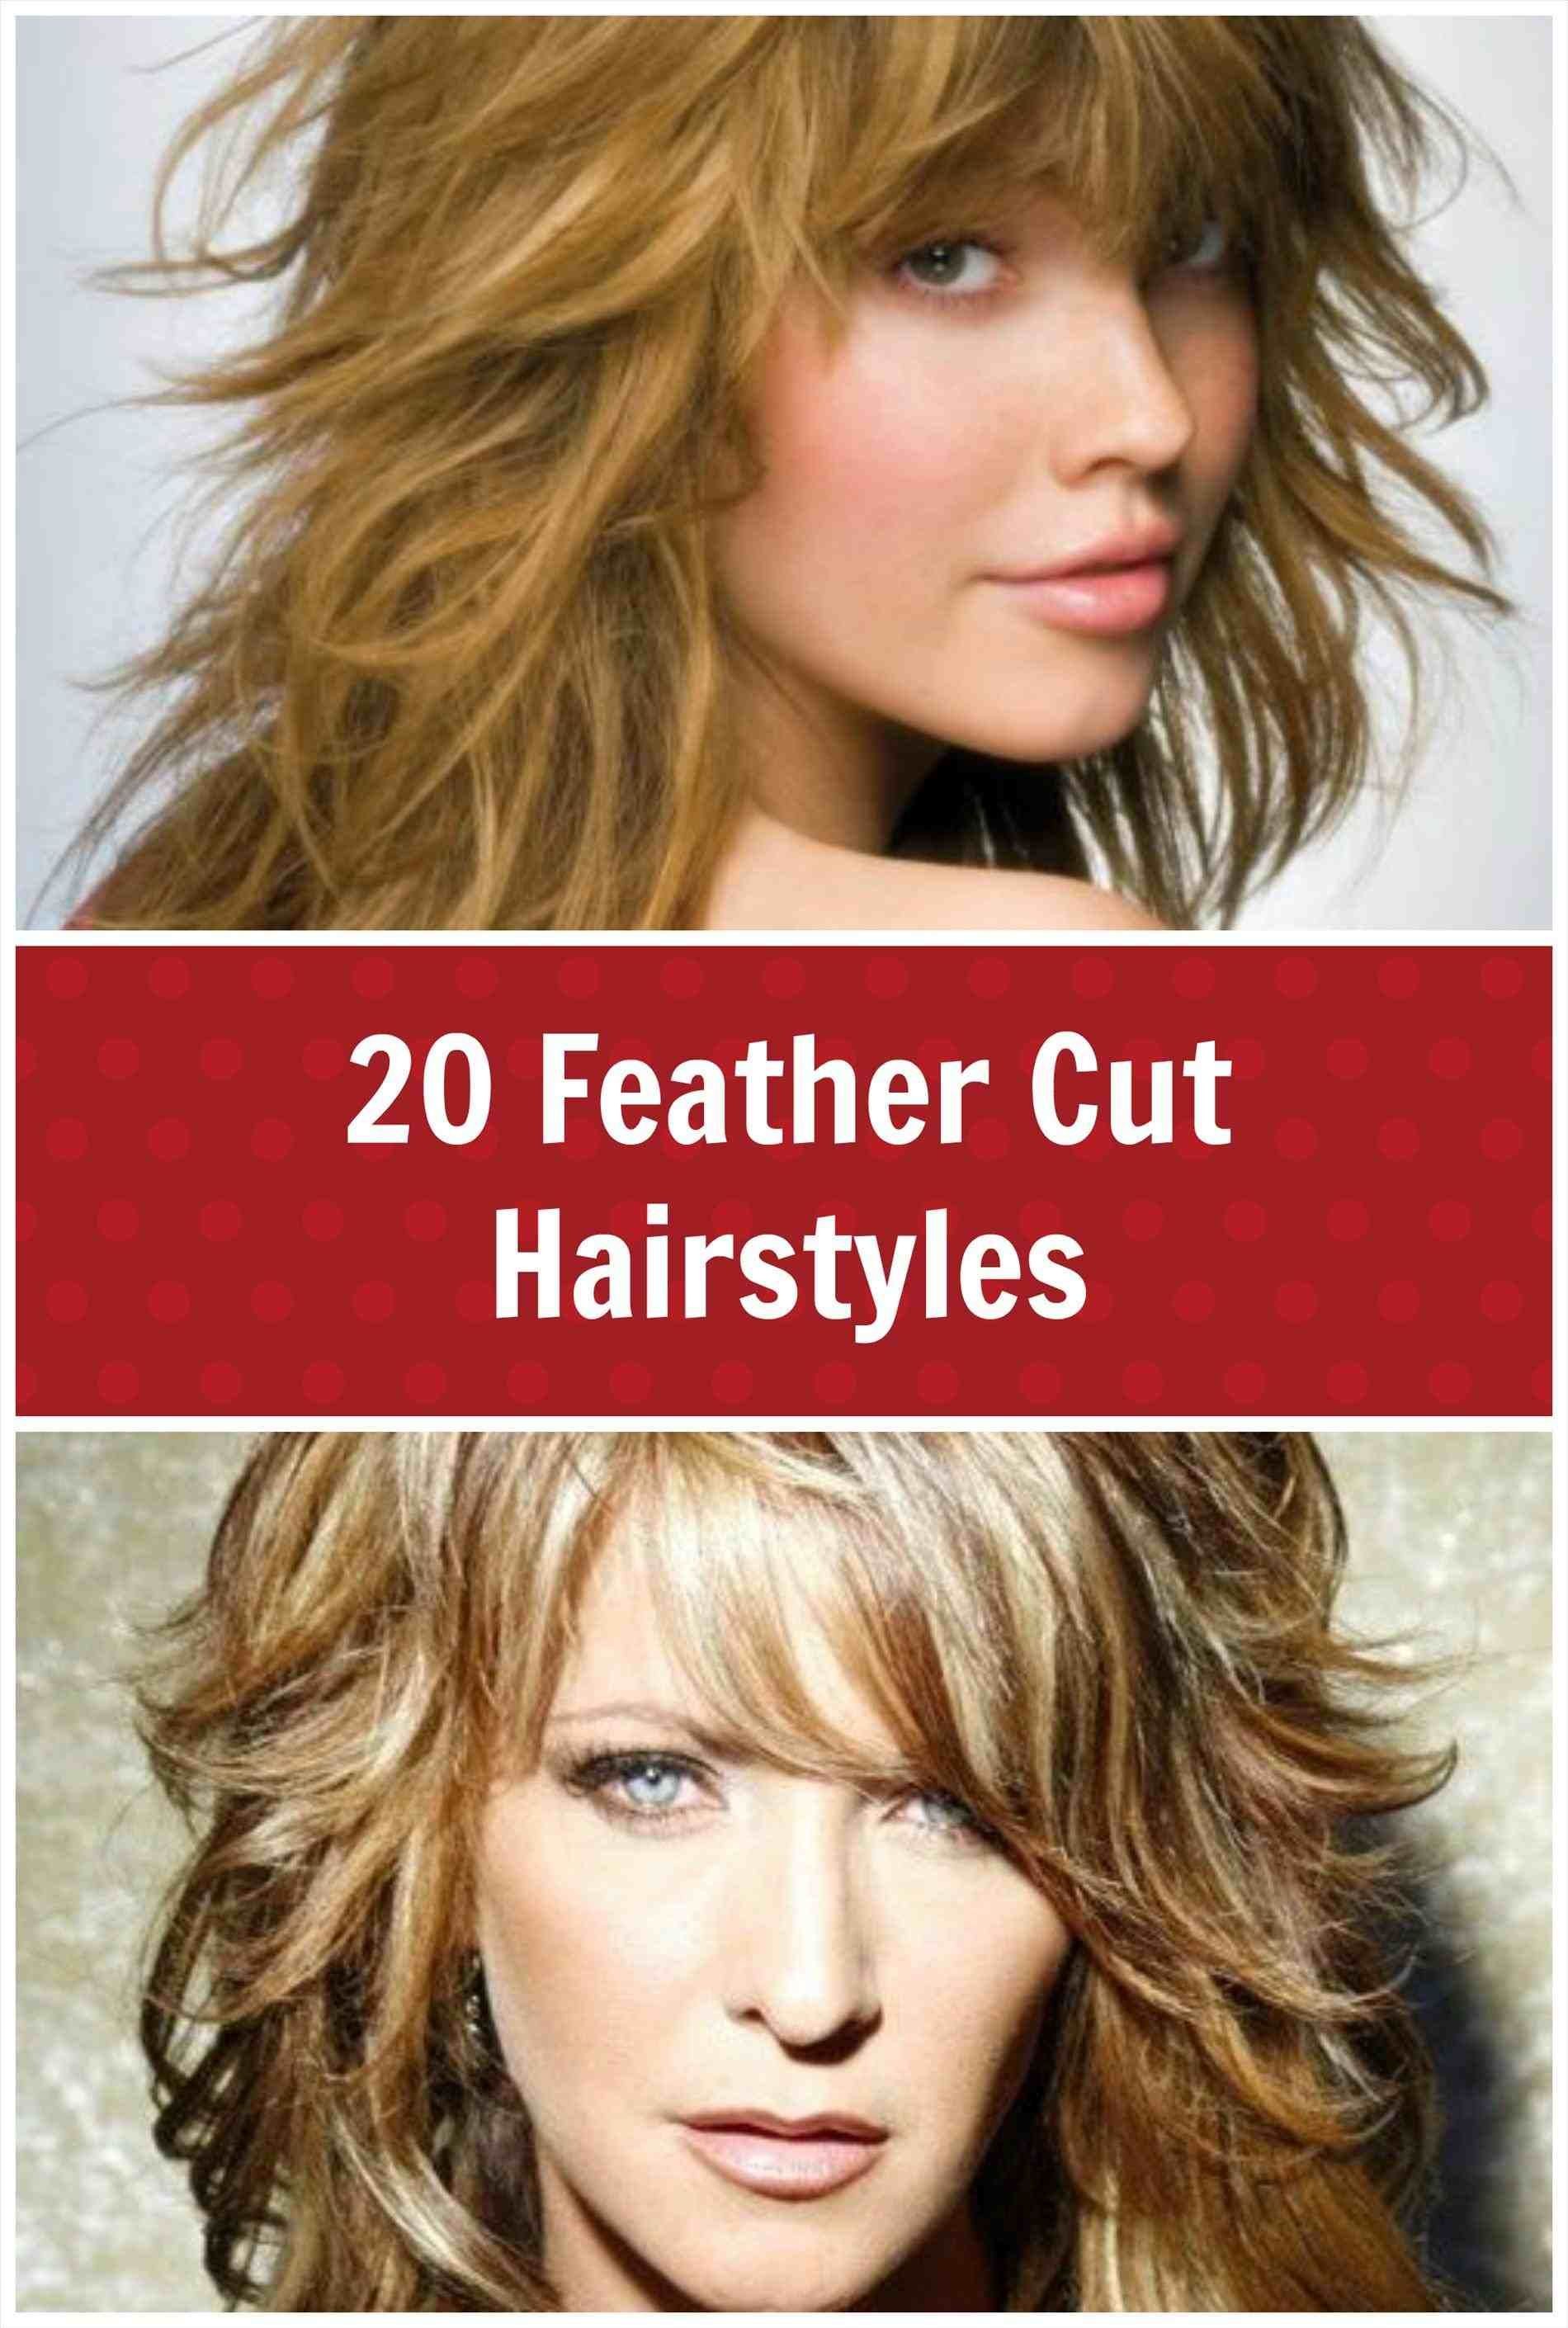 Feather Hair Cutting For Girls